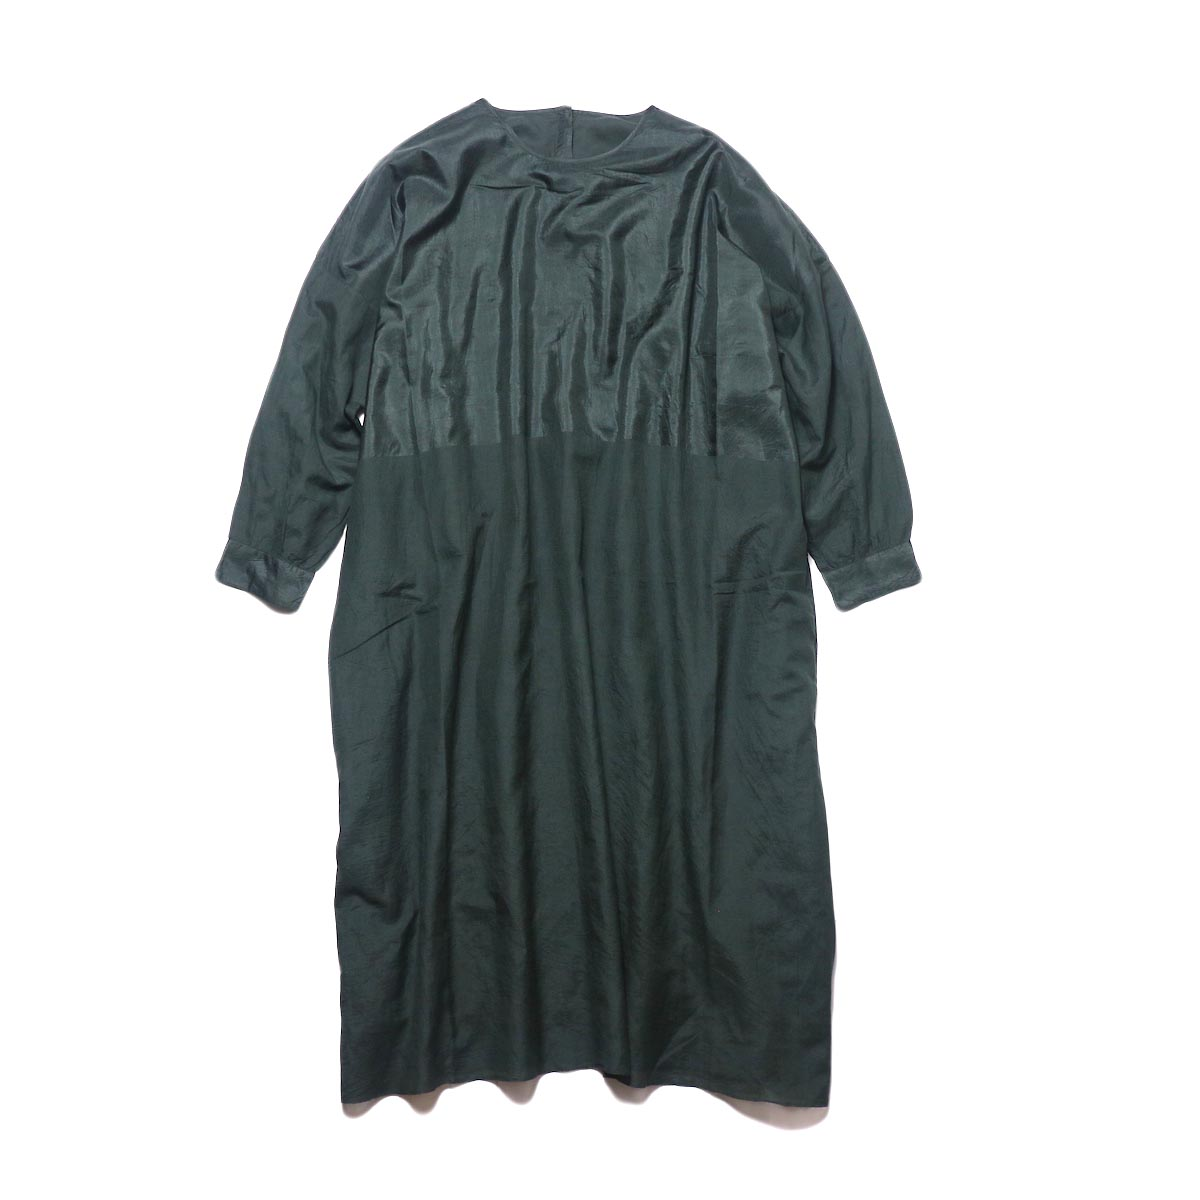 maison de soil / HAND WOVEN COTTON SILK × SILK PLAIN DROP SHOULDER DRESS (green) 正面